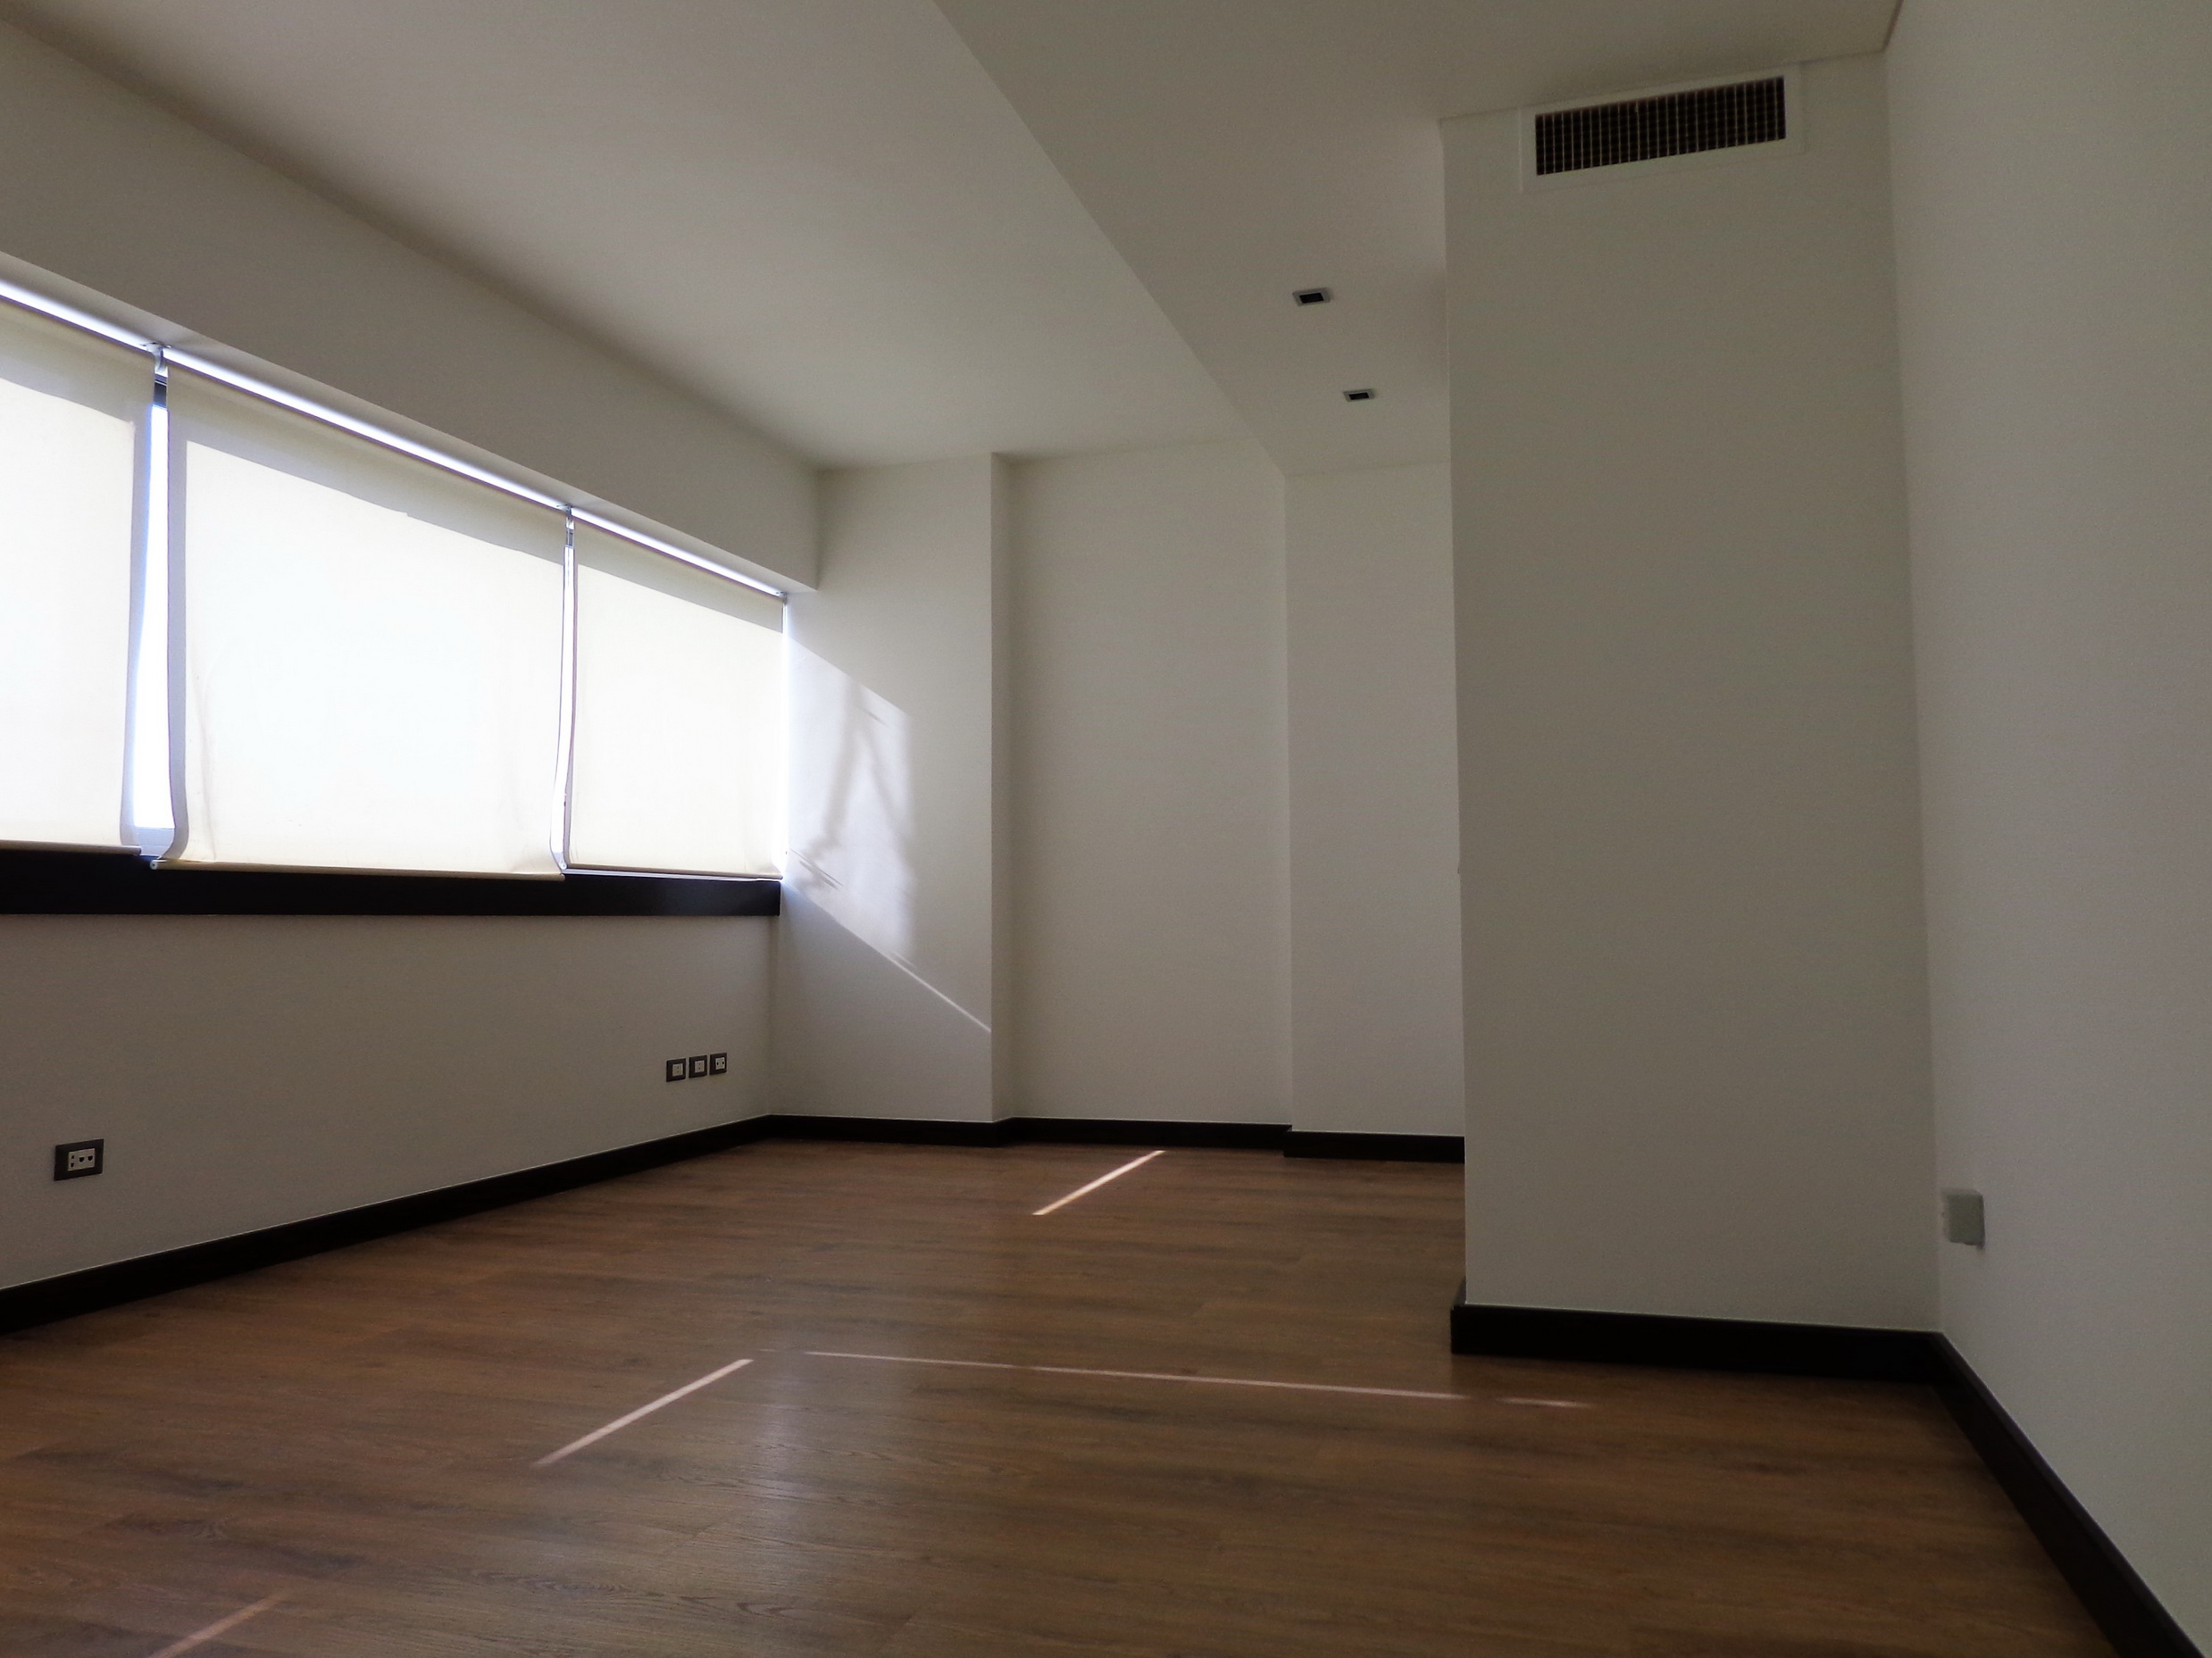 Office for Rent, Ashrafieh, 71 sqm,  15,000 USD